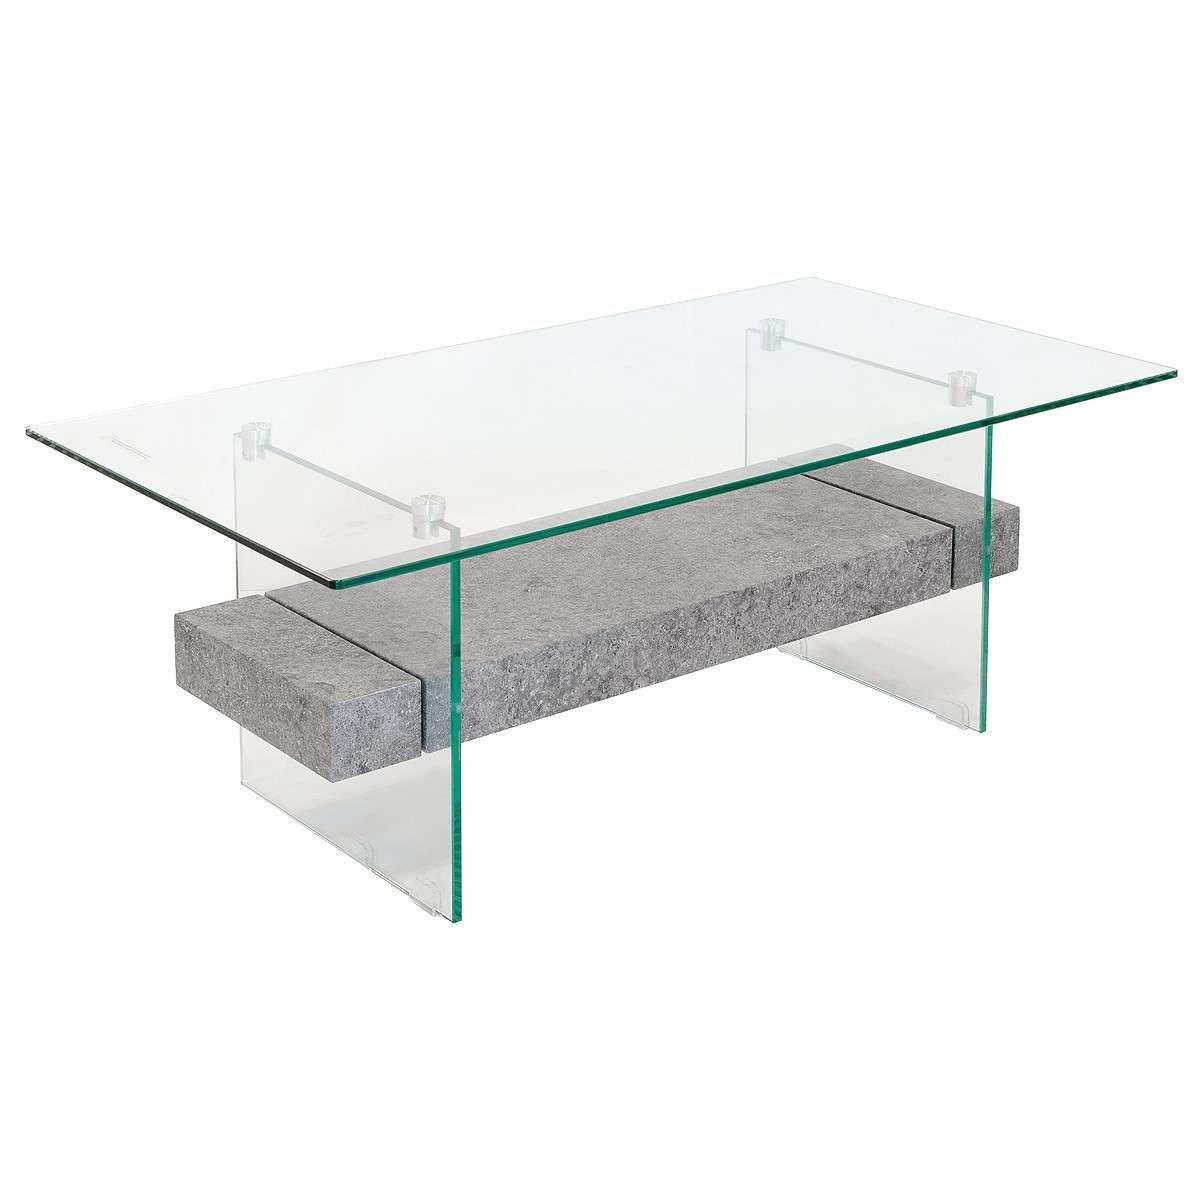 Stone Effect Glass Coffee Table – Be Fabulous! Within Recent Stone And Glass Coffee Tables (View 10 of 20)